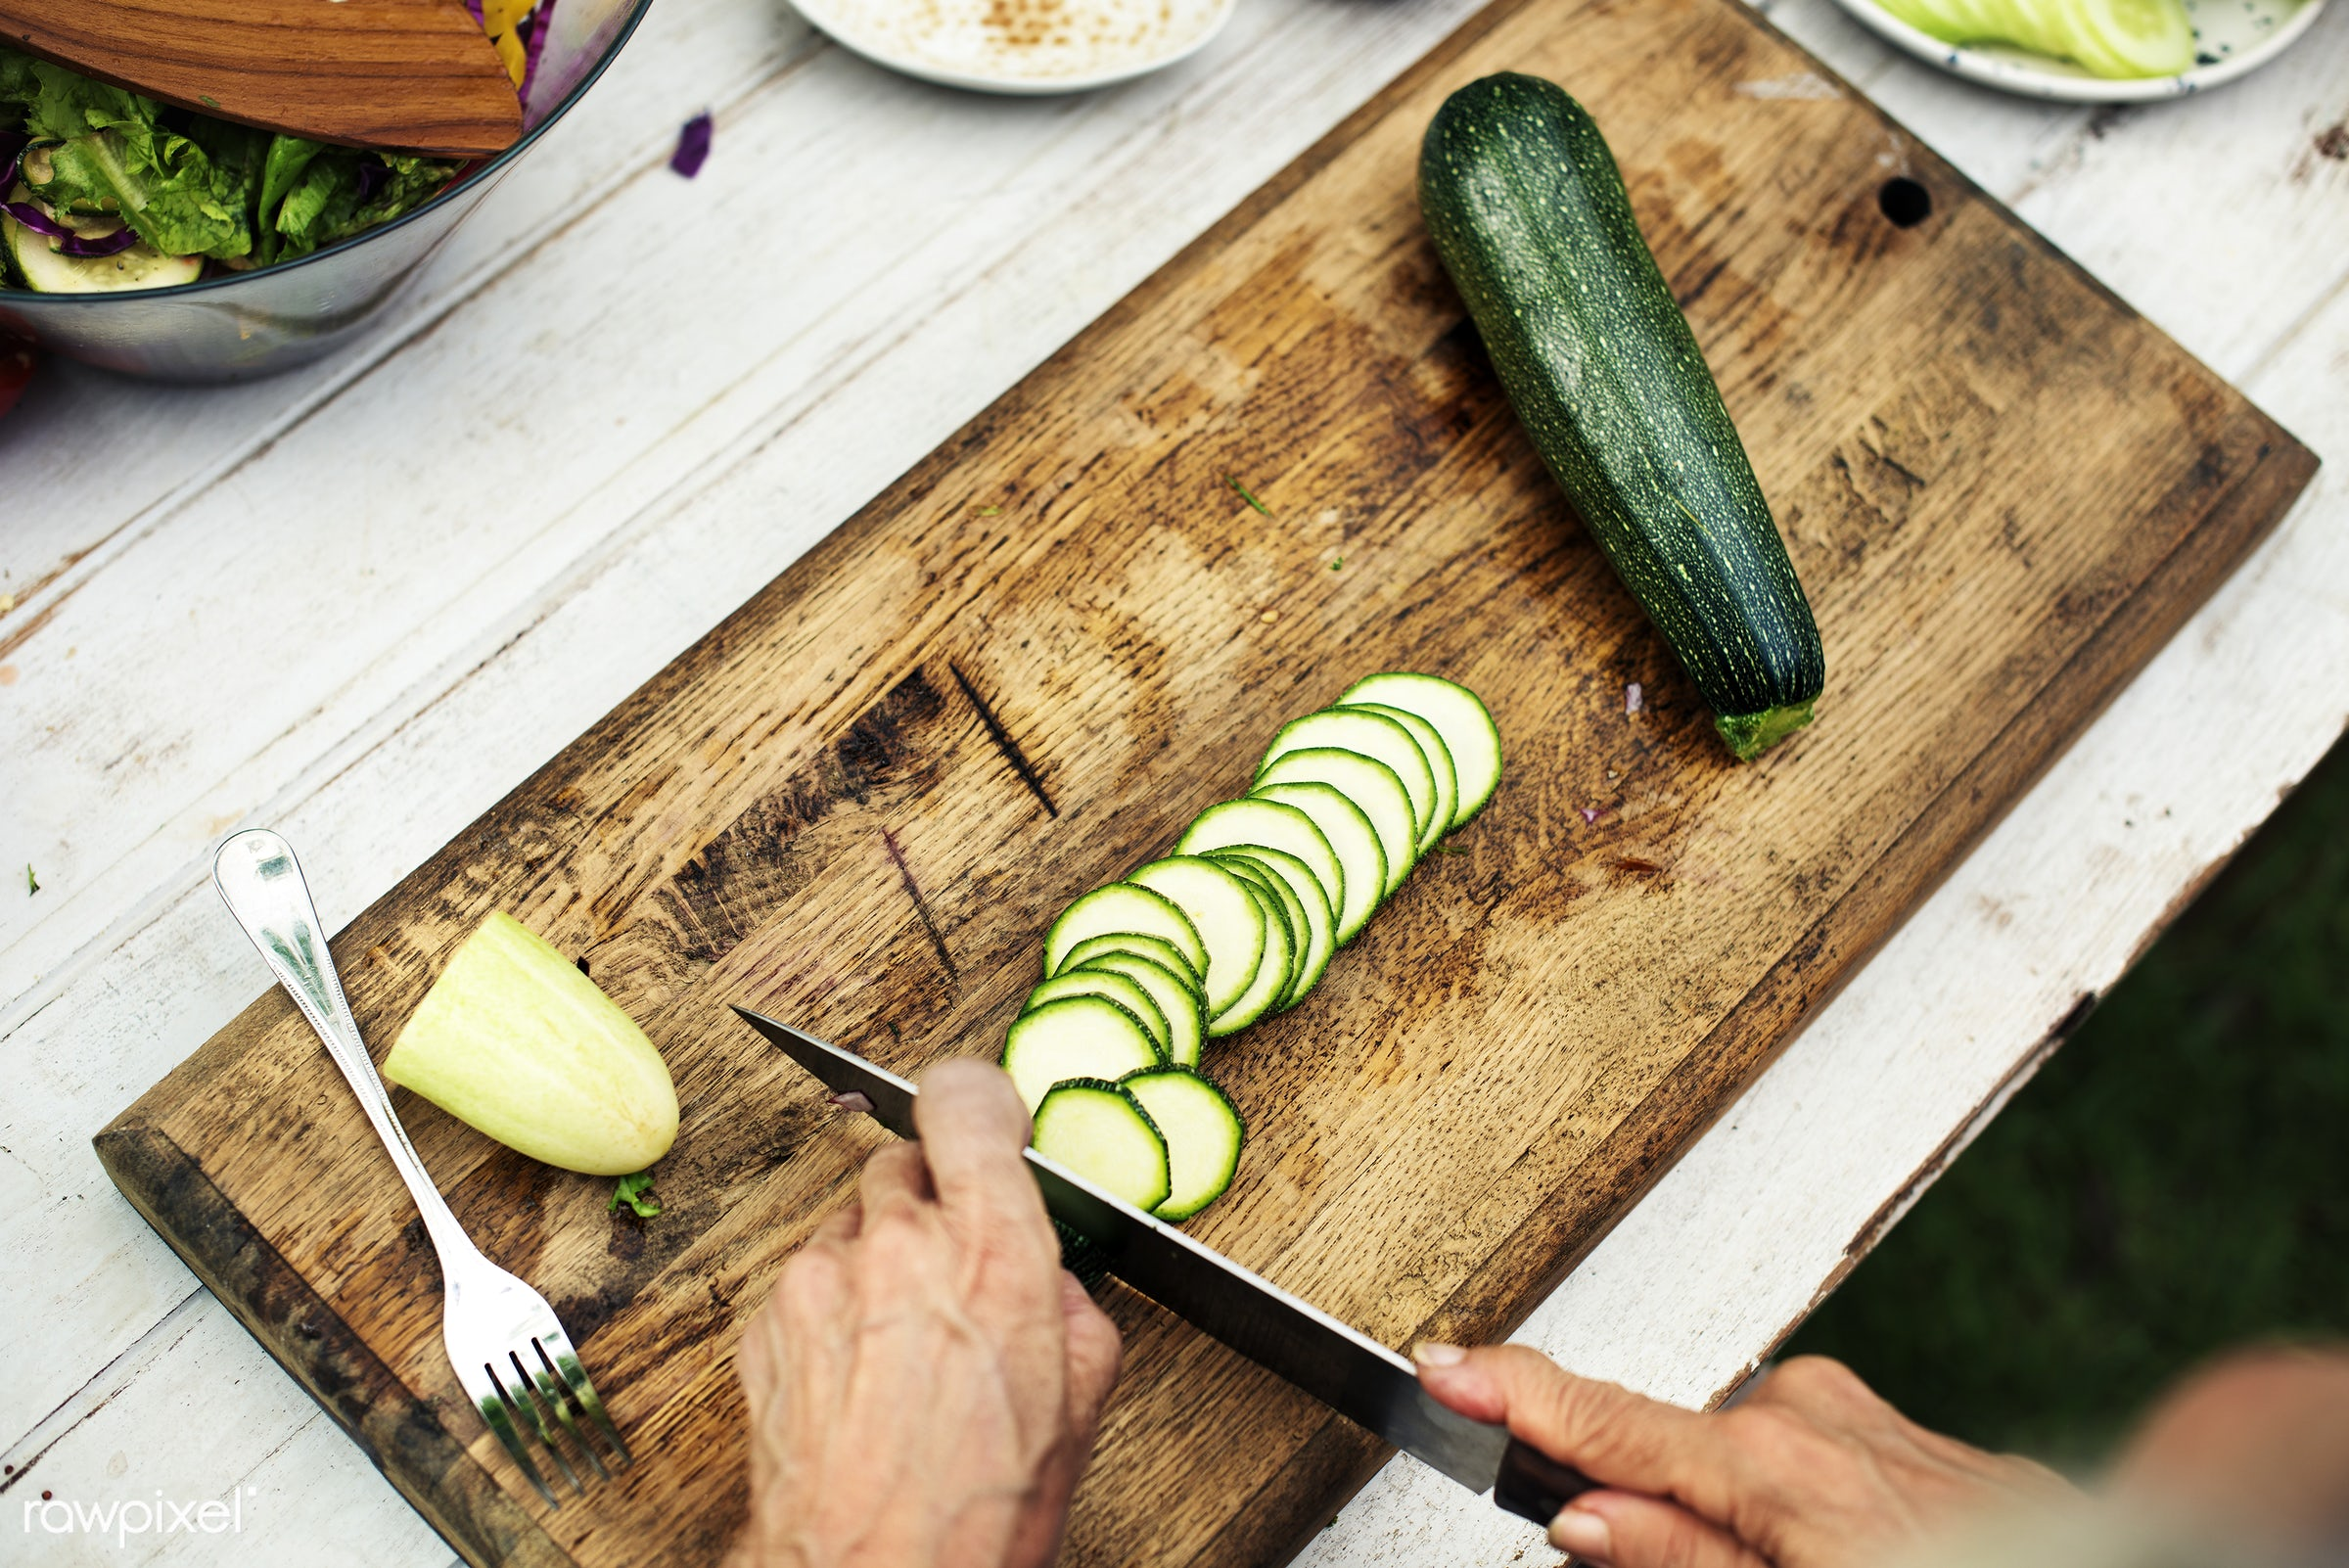 recipe, cuisine, homemade, zucchini, fresh, ingredient, cooking, gourmet, knife, meal, cook, fork, preparation, cutting...